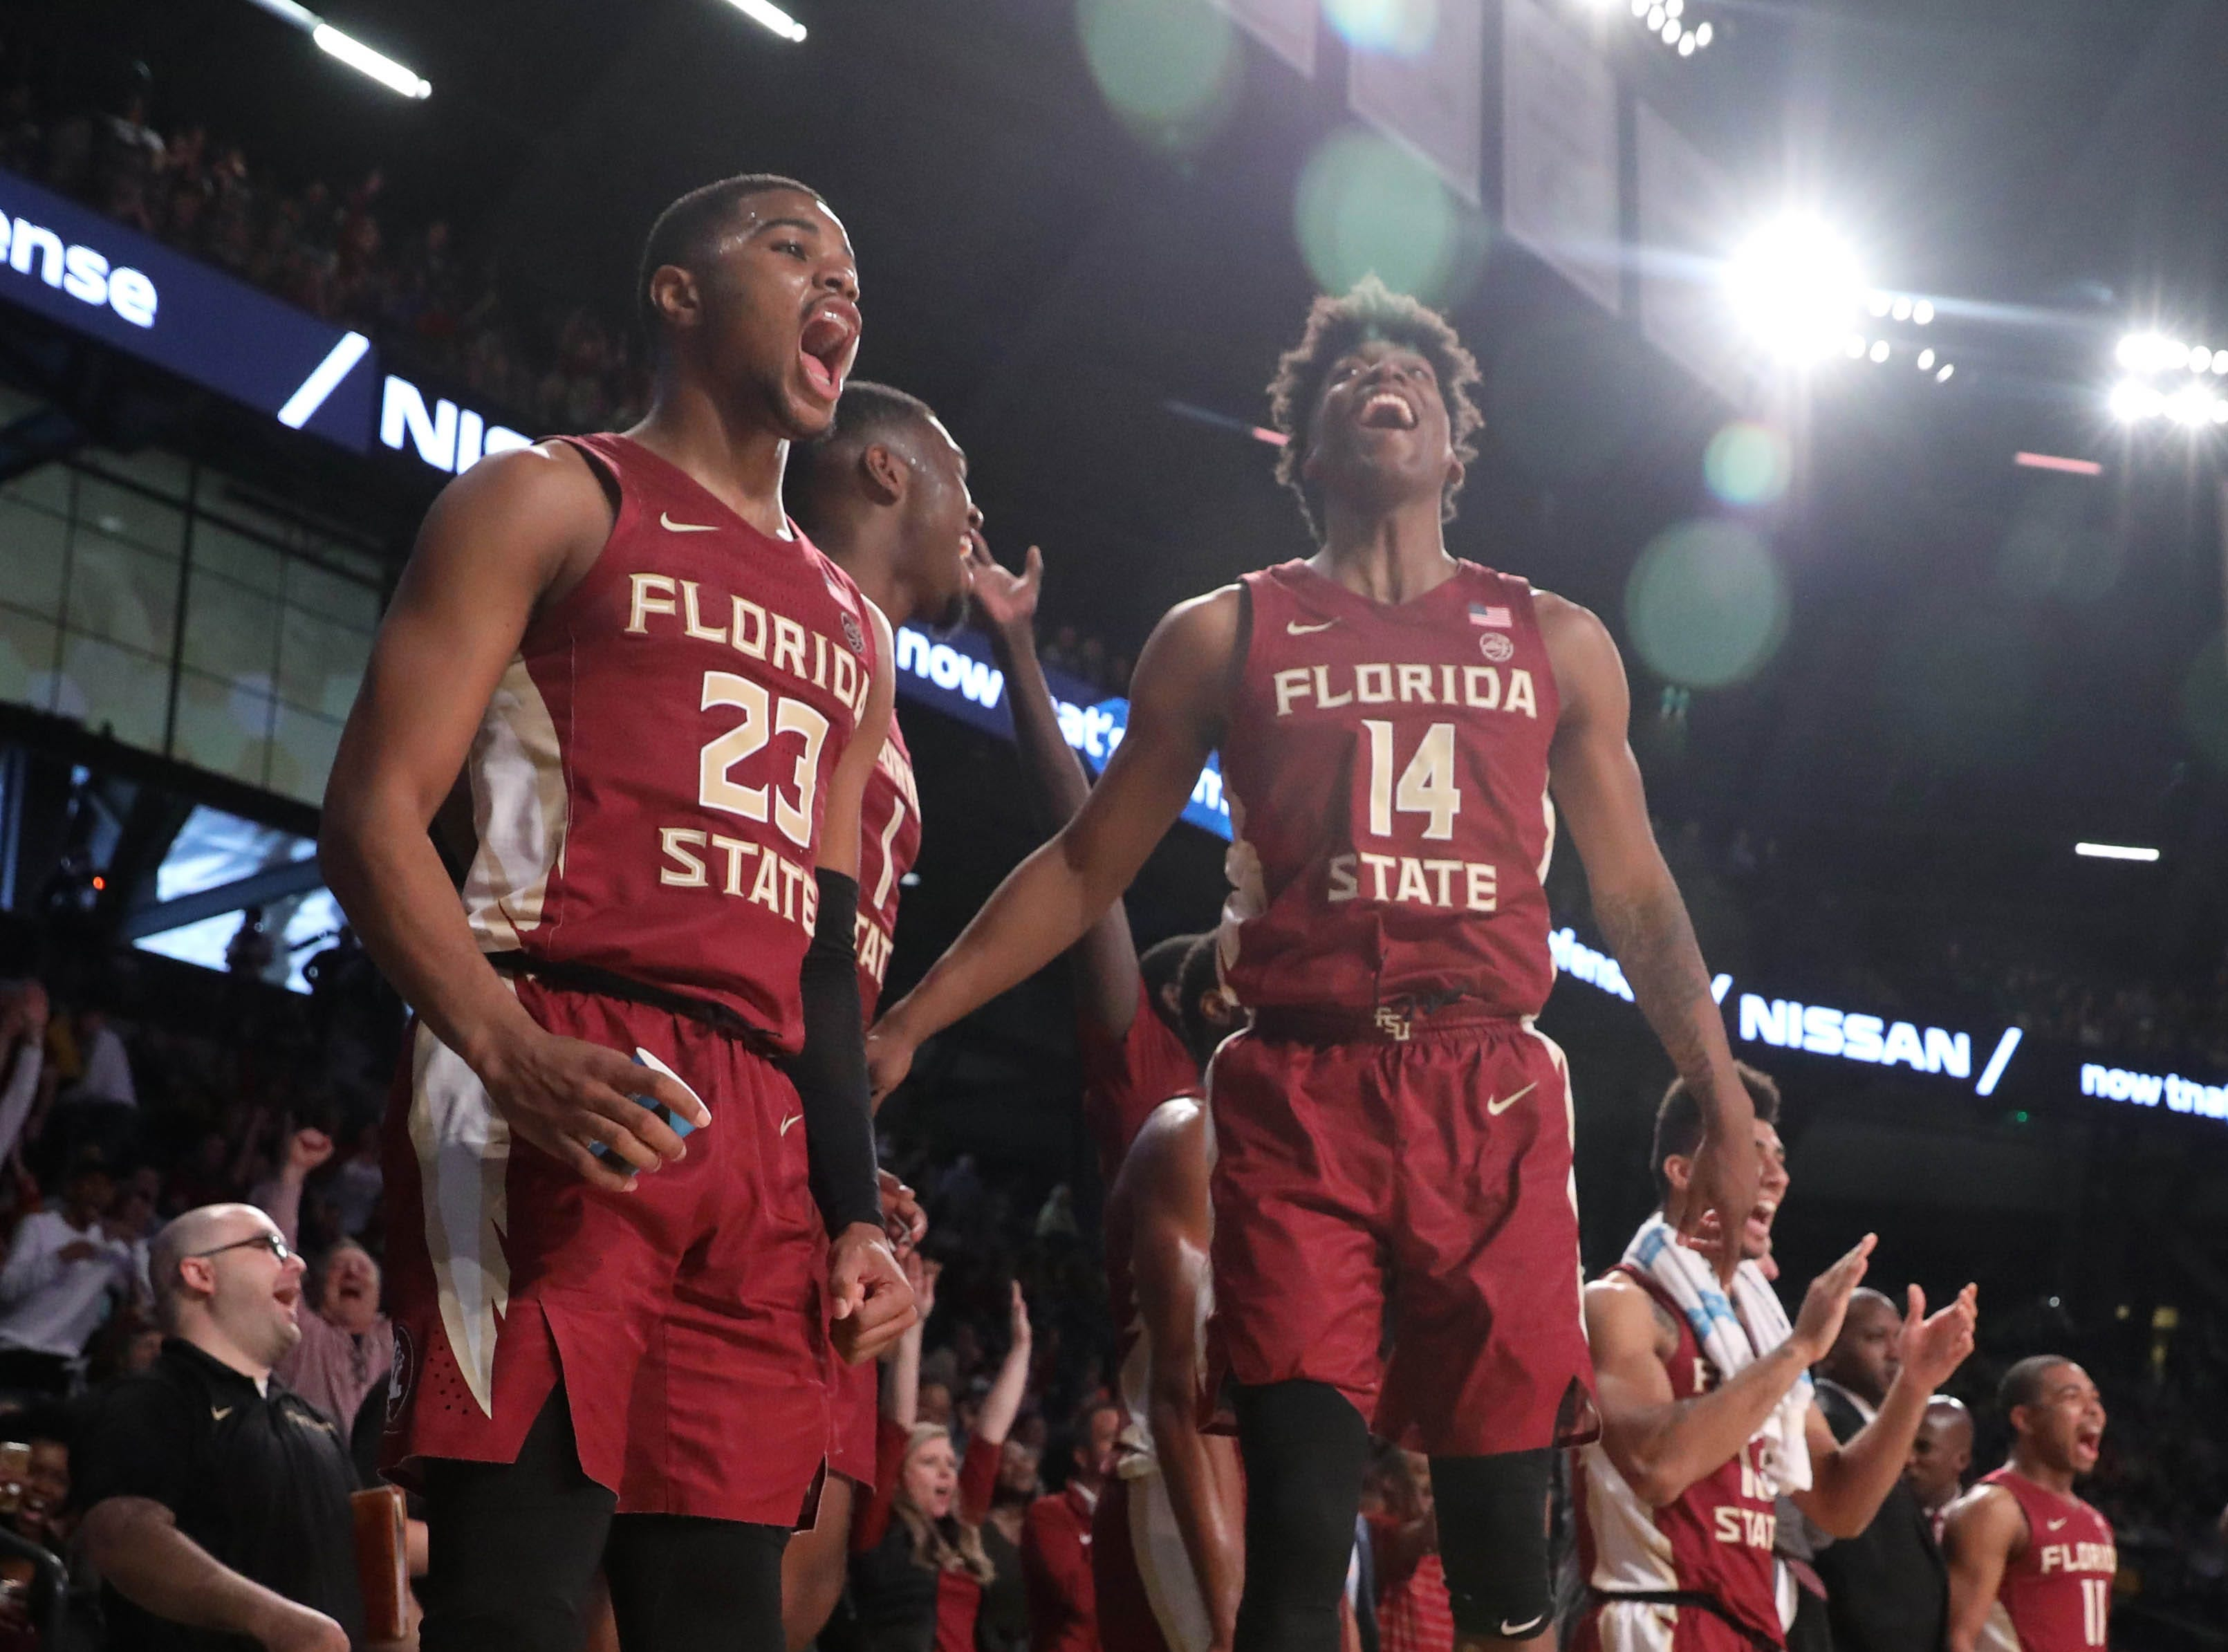 Feb 16, 2019; Atlanta, GA, USA; Florida State Seminoles guard M.J. Walker (23), guard Terance Mann (14), and others celebrate on the bench after a basket by a teammate in the second half against the Georgia Tech Yellow Jackets at McCamish Pavilion. Mandatory Credit: Jason Getz-USA TODAY Sports